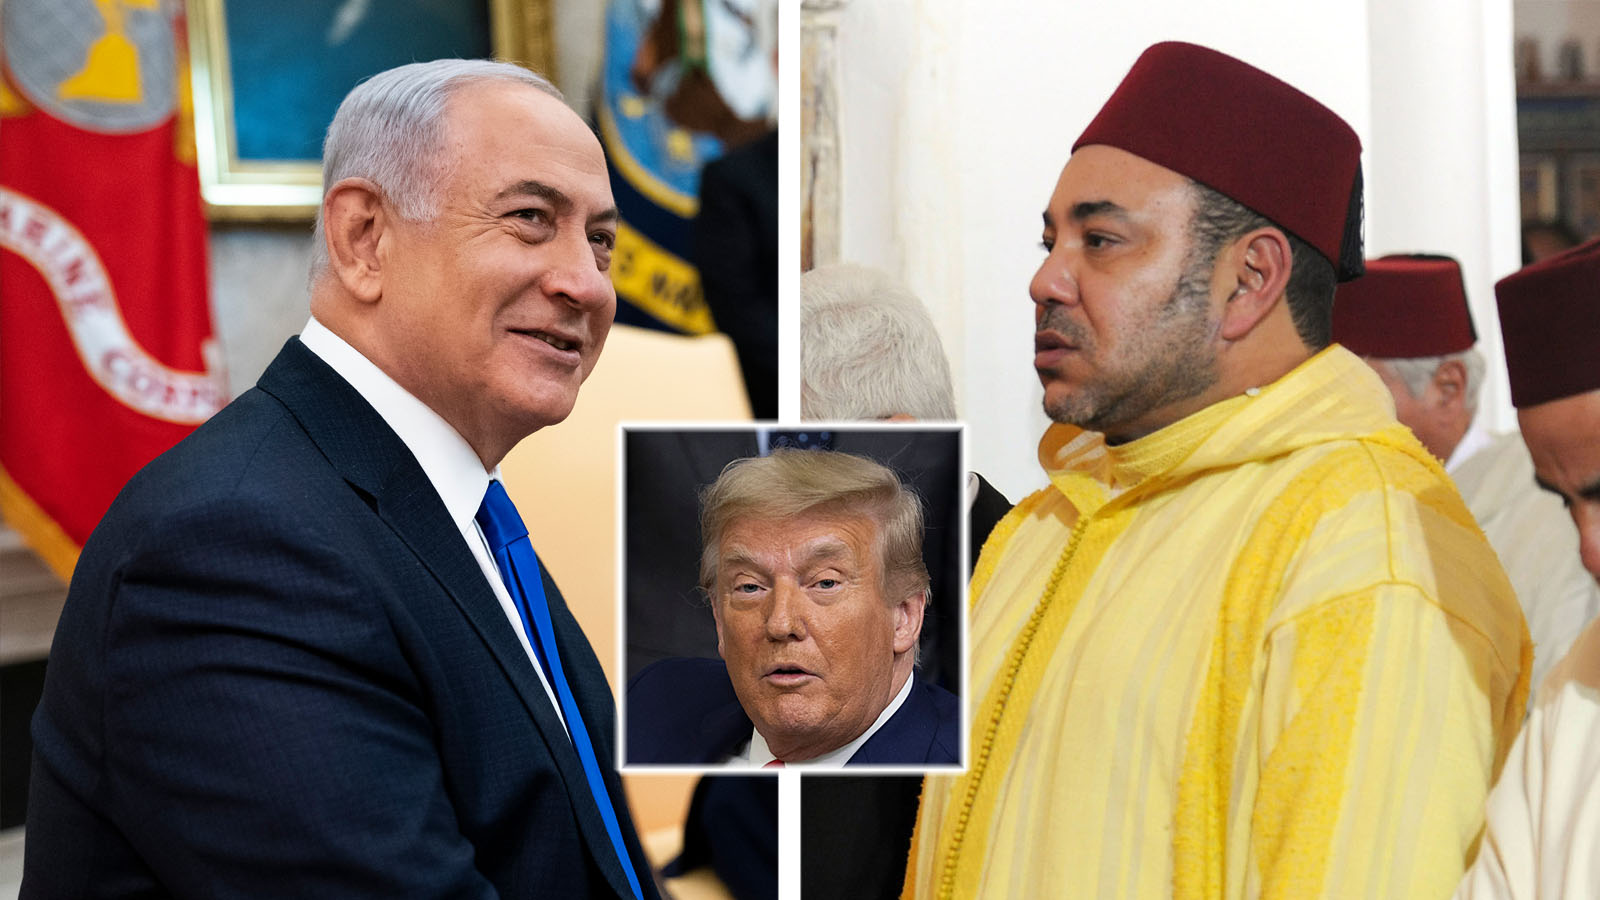 Israel and Morocco Stand to Gain from Ties as U.S. Recognizes Moroccan Claim to Contested Territory